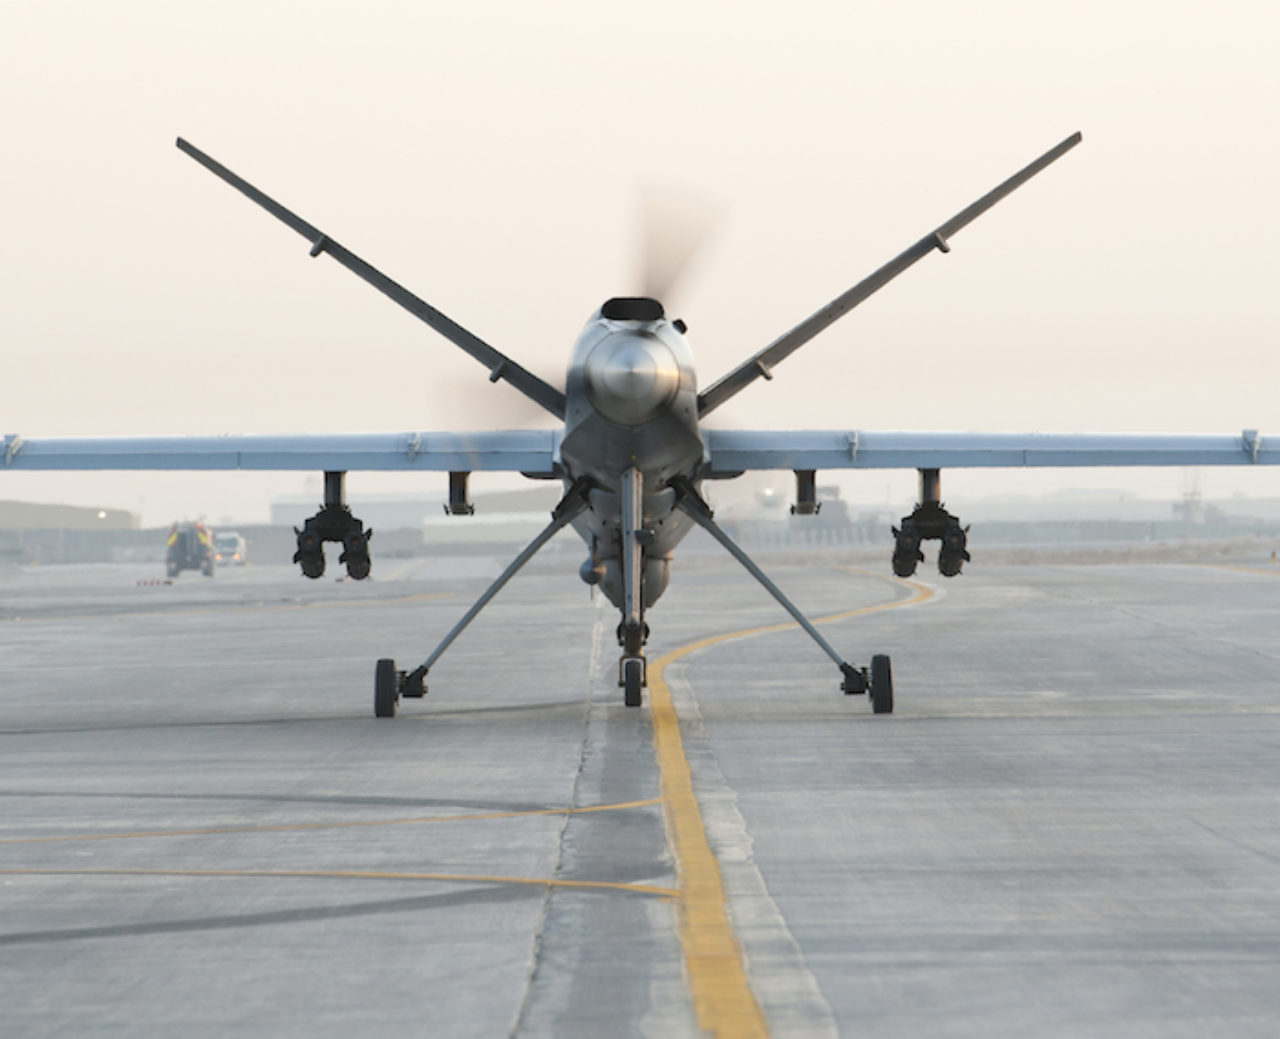 Revealed Britain Has Flown 301 Reaper Drone Missions Against ISIS In Iraq Firing At Least 102 Missiles